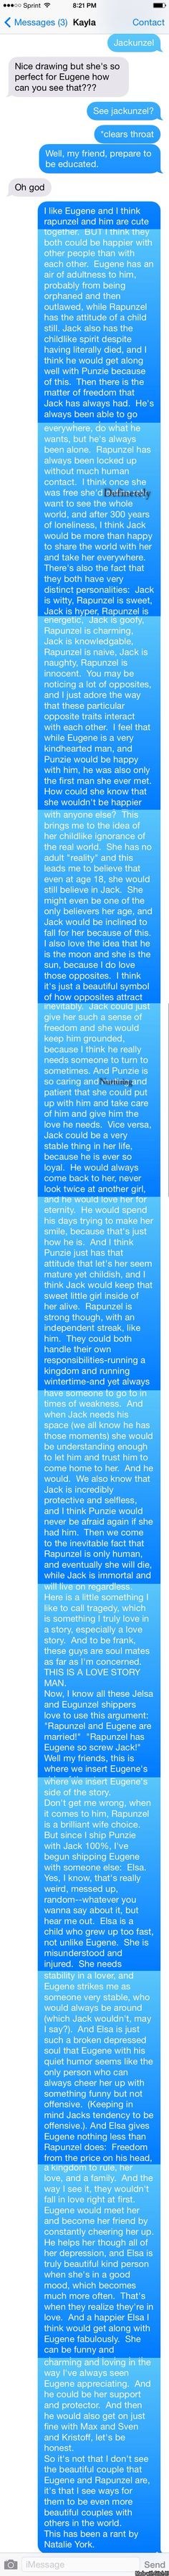 If you've ever wondered why we ship Jackunzel...I made this for all of us out there who are constantly under attack by Jelsa shippers while talking to my friend.  (No offense intended to you Jelsa shippers, especially if you stay out of those arguments.)